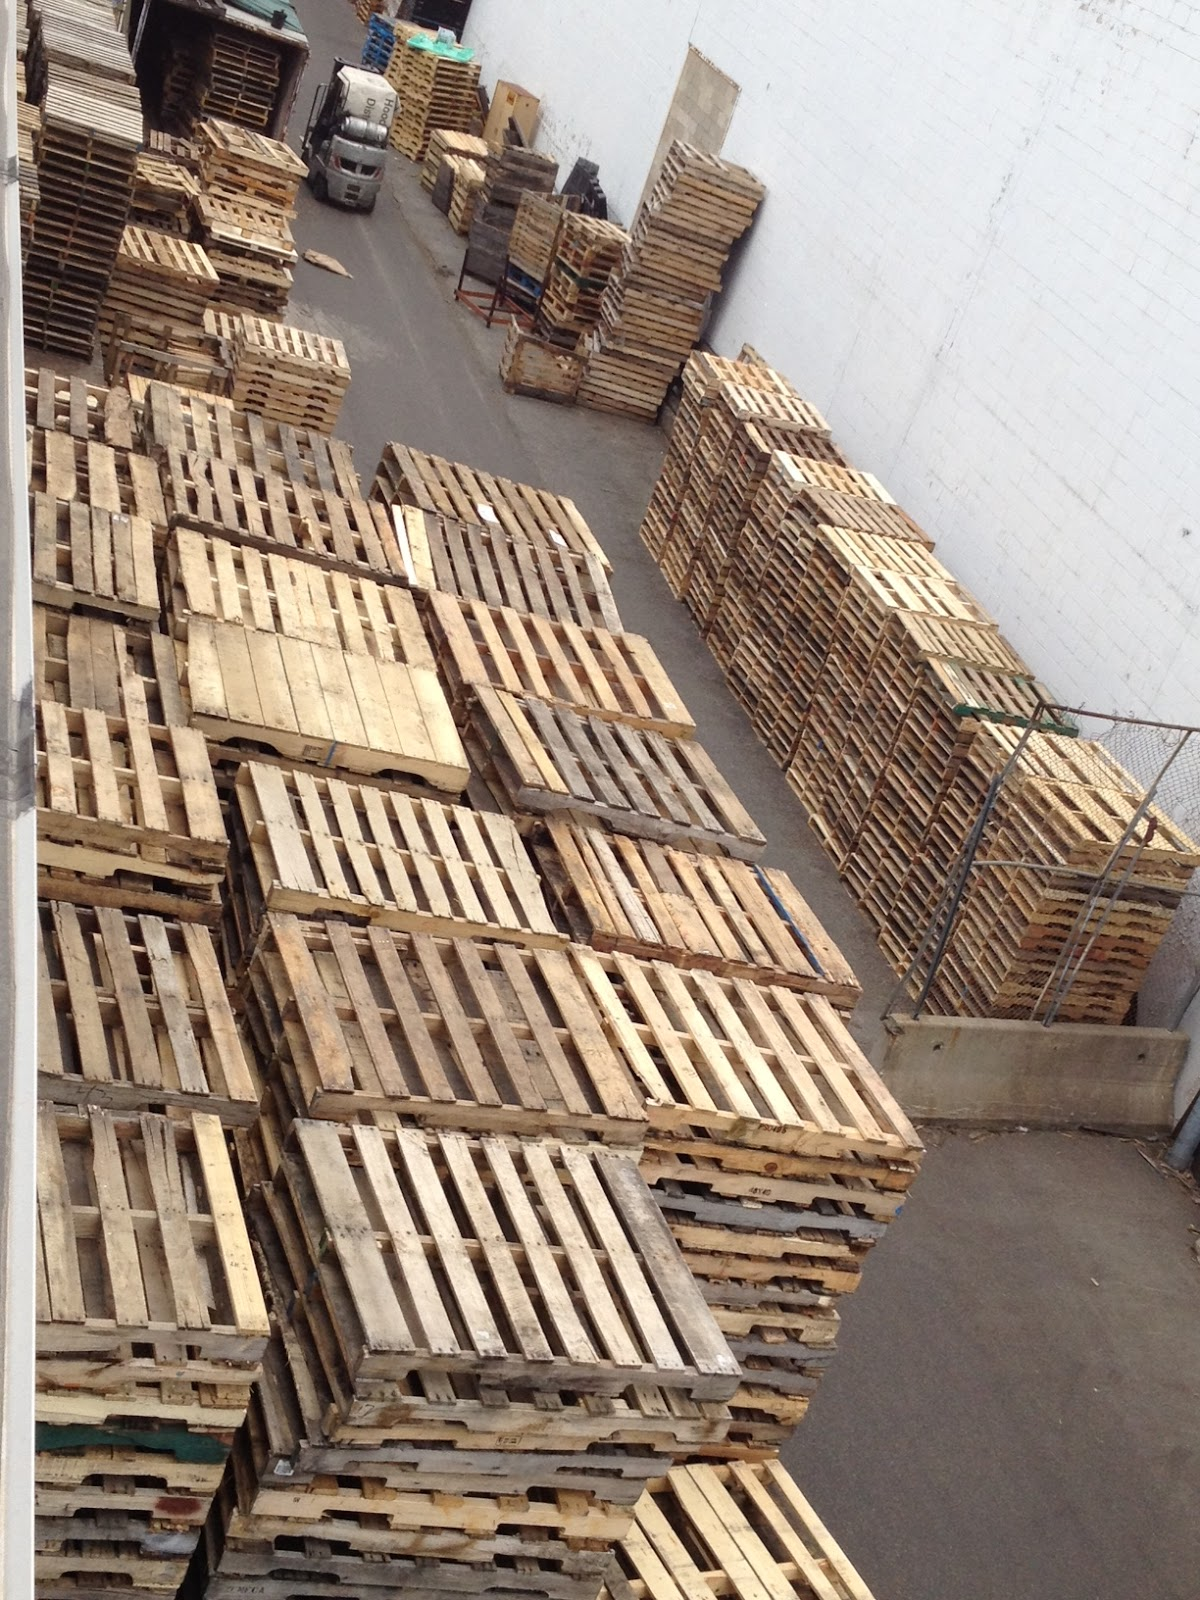 Pallet World of New England: We buy wooden pallets!